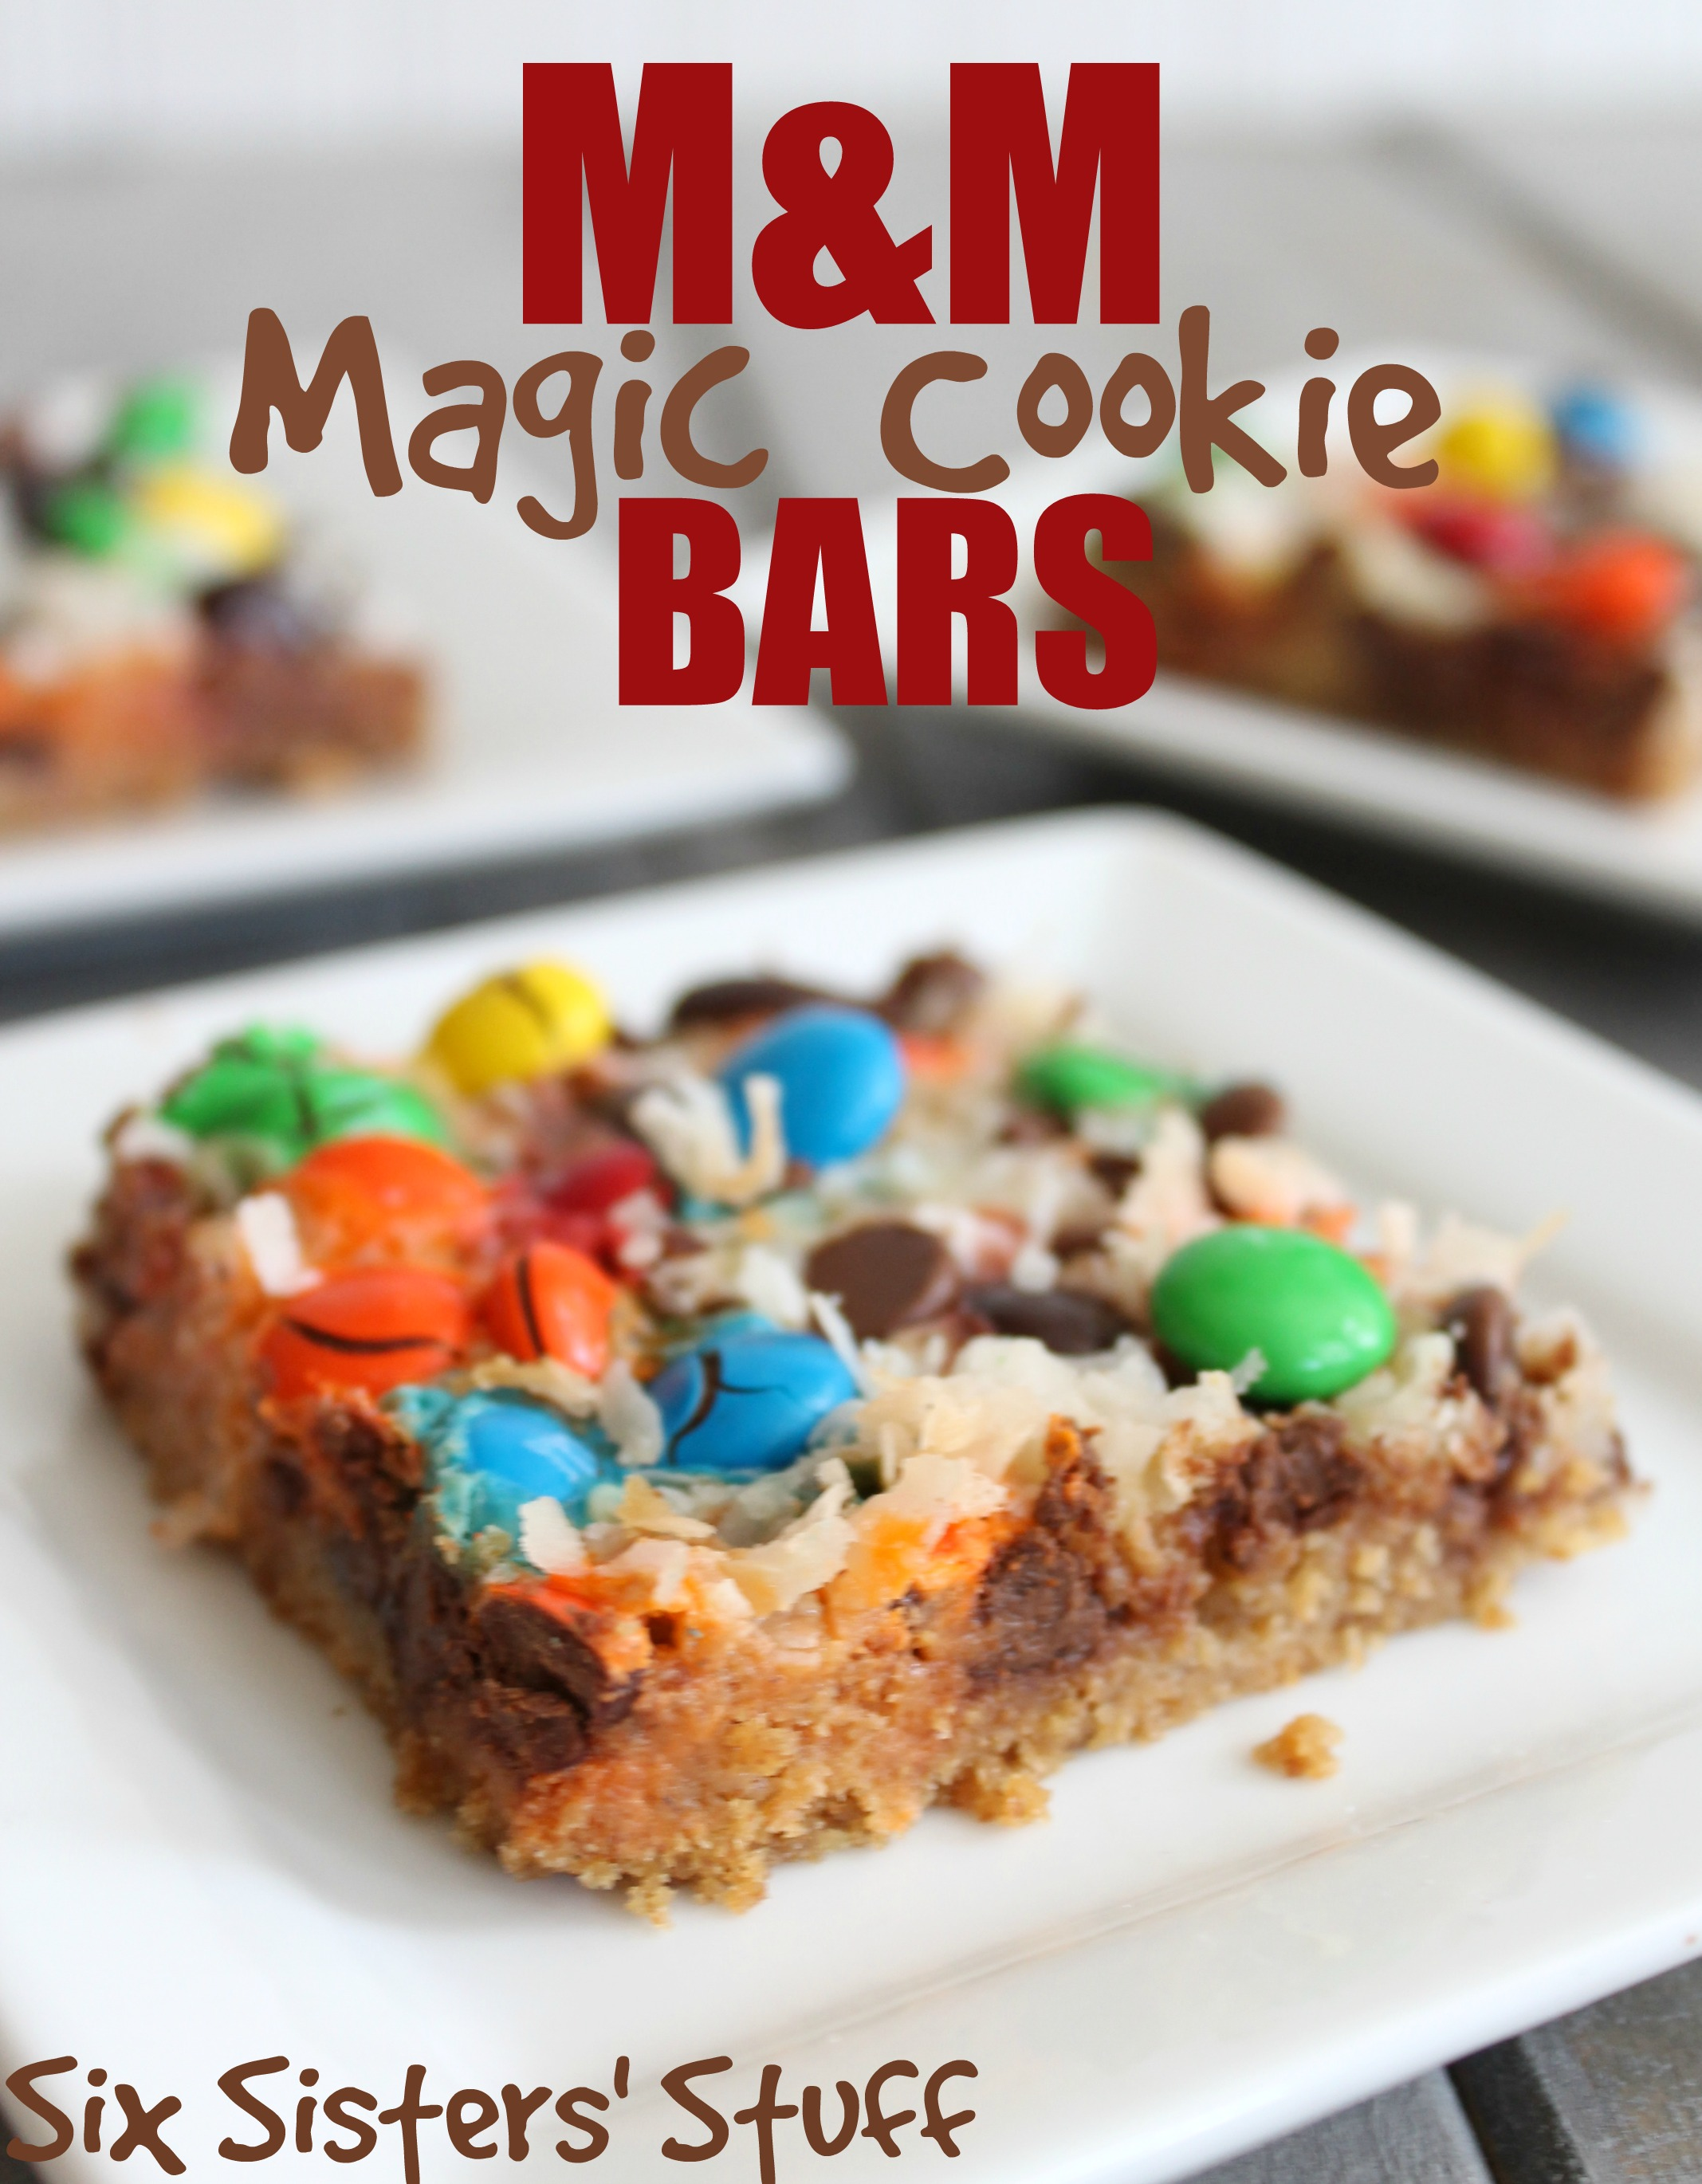 M&M Magic Cookie Bars